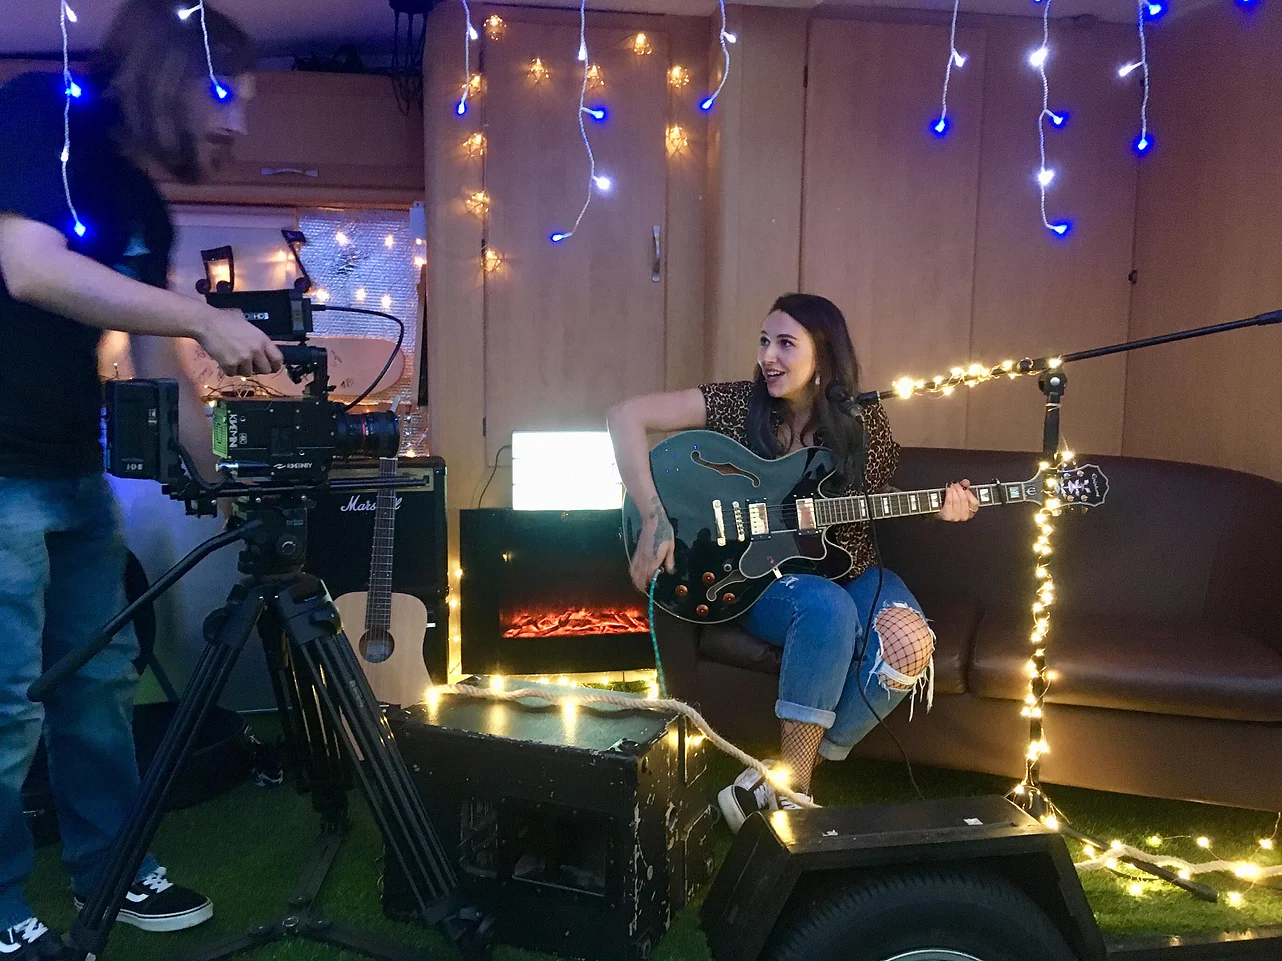 This company will bring their pop-up caravan stage and recording studio to you, The Manc